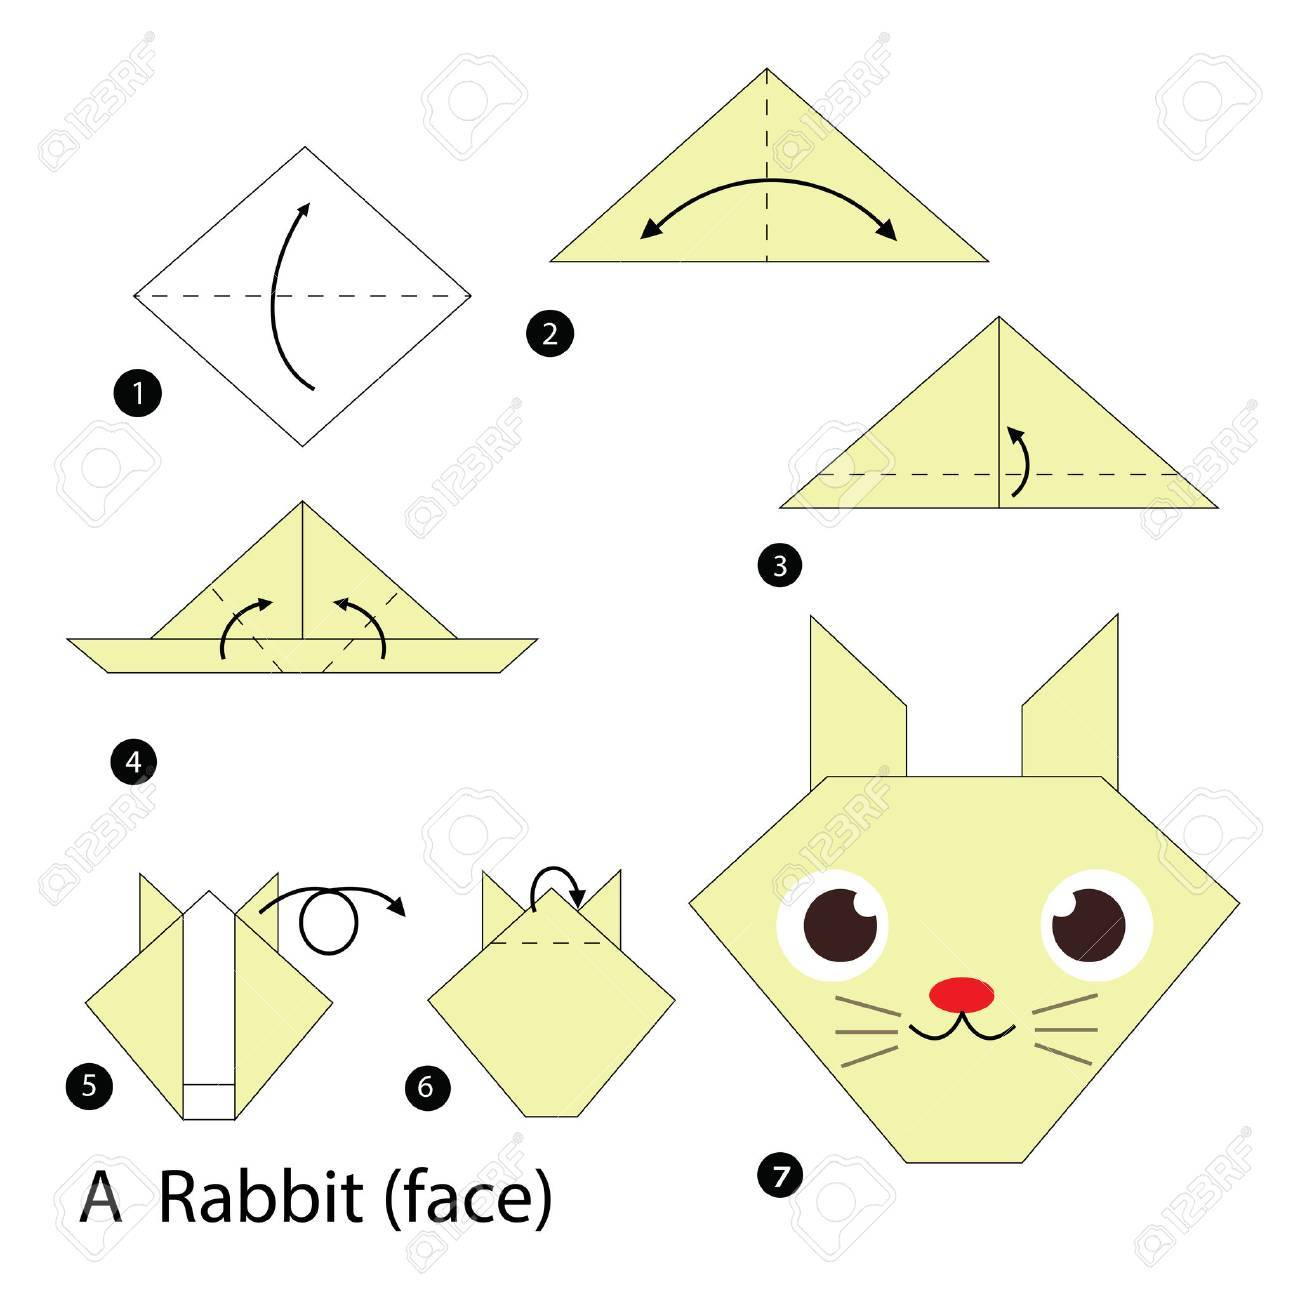 How to Make an Origami Rabbit Face Step by Step Instructions | Free  Printable Papercraft Templates | 1300x1300